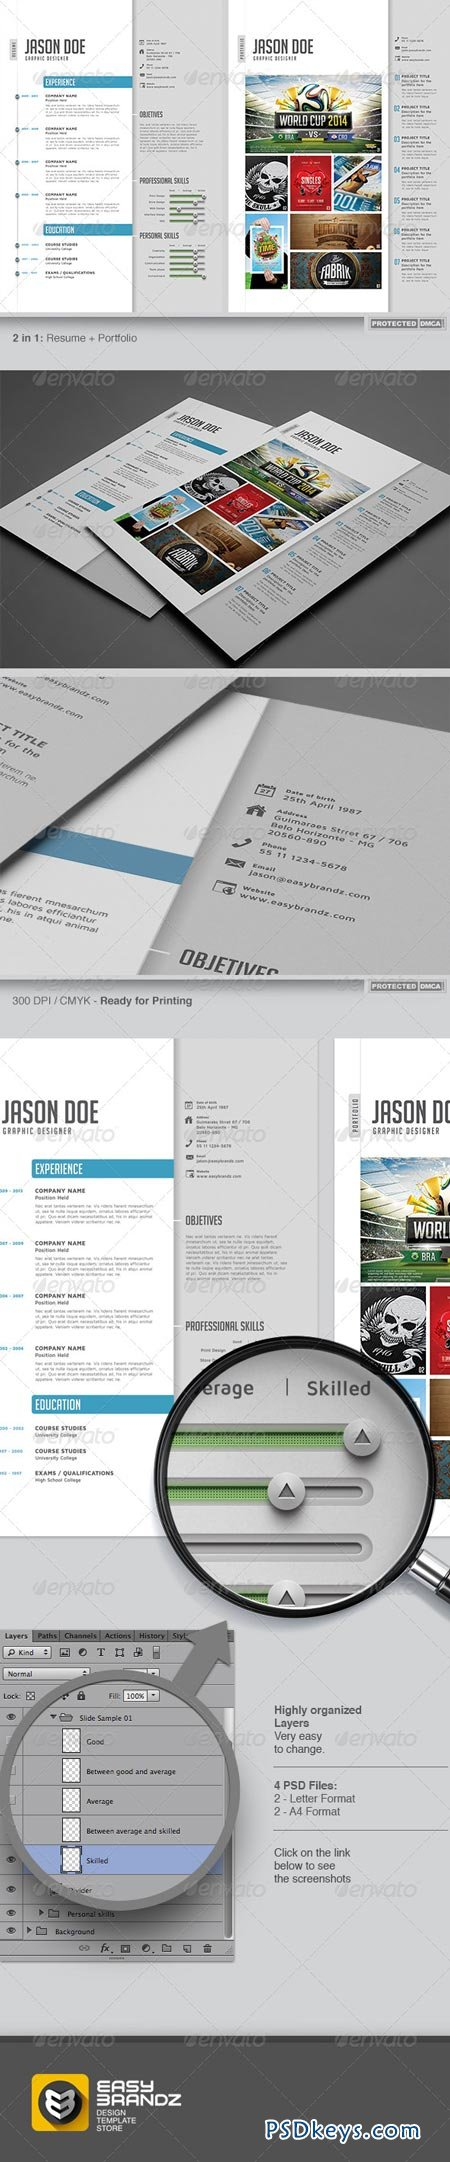 best resume design